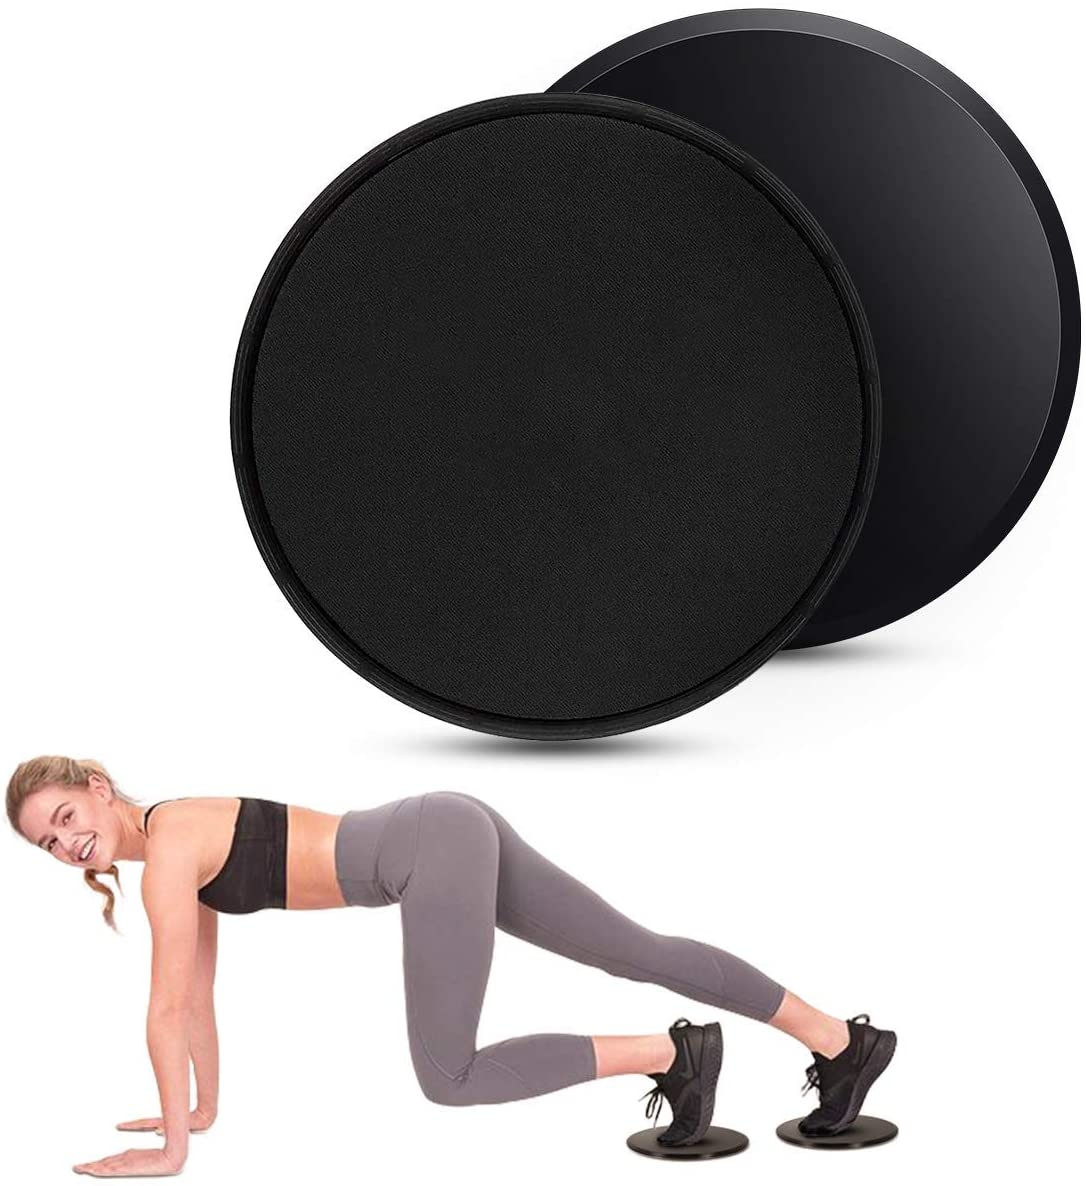 Core Sliders - Dual Sided Gliding Discs, Abdominal Exercise Equipment, Ideal for Ab & Core Workouts